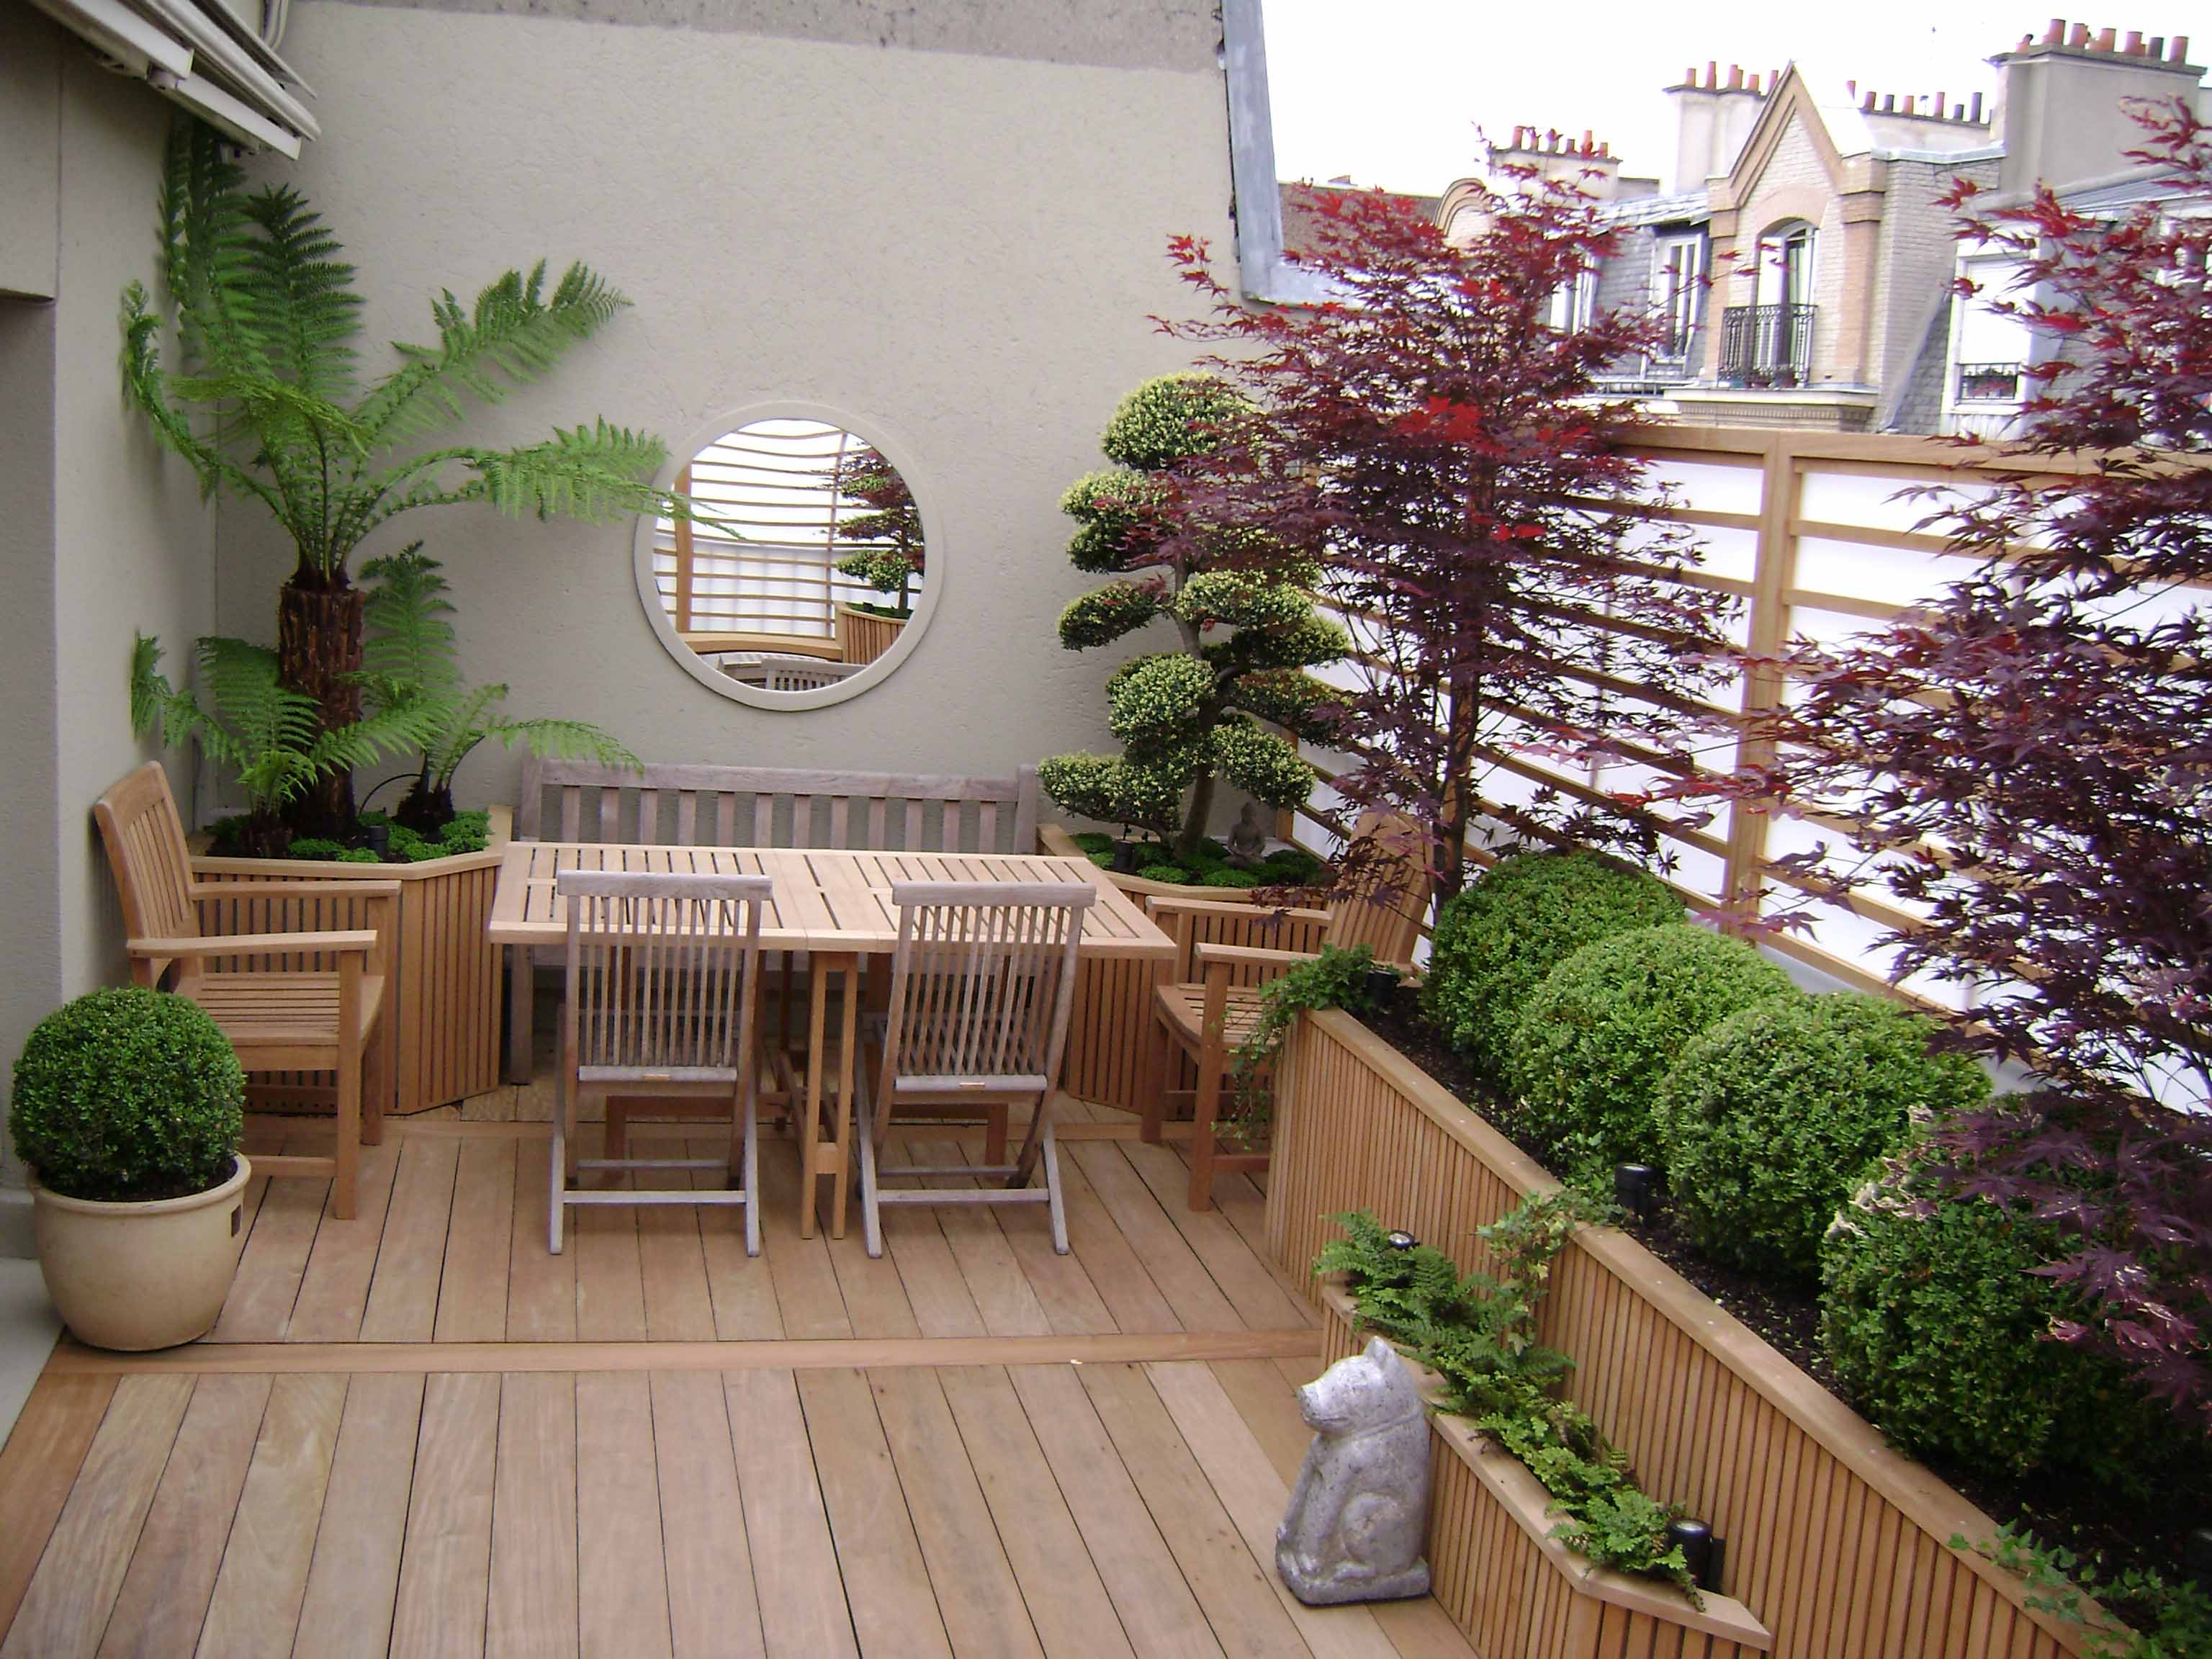 D coration sur terrasse - Decoration de terrasse ...